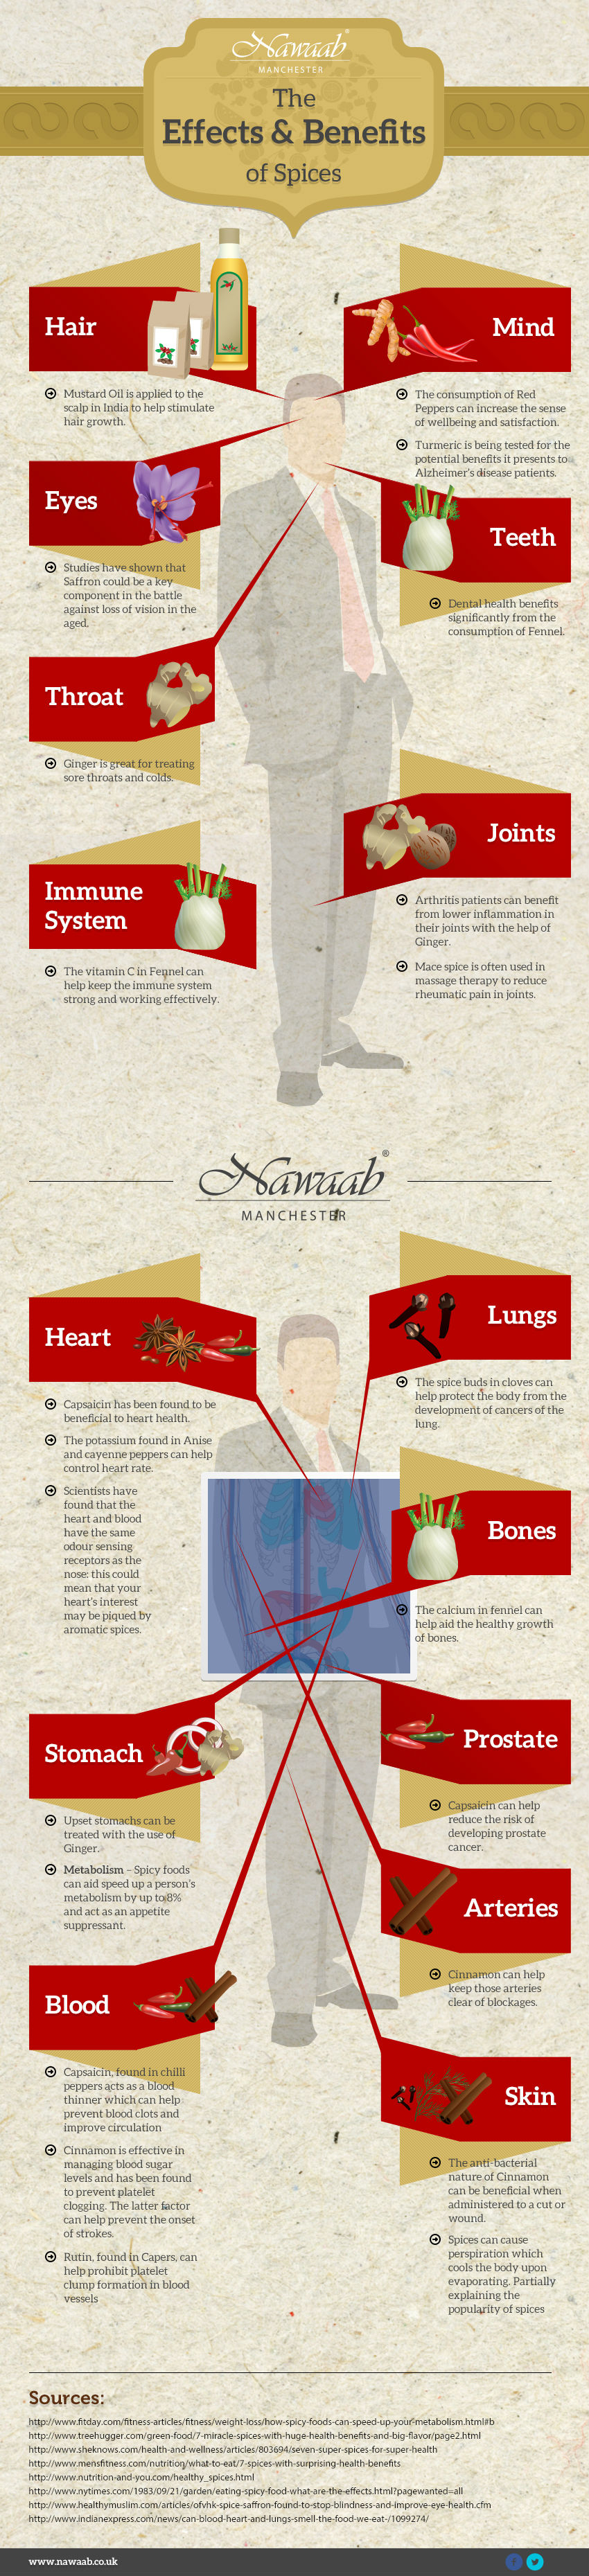 Benefits of Spices infographic